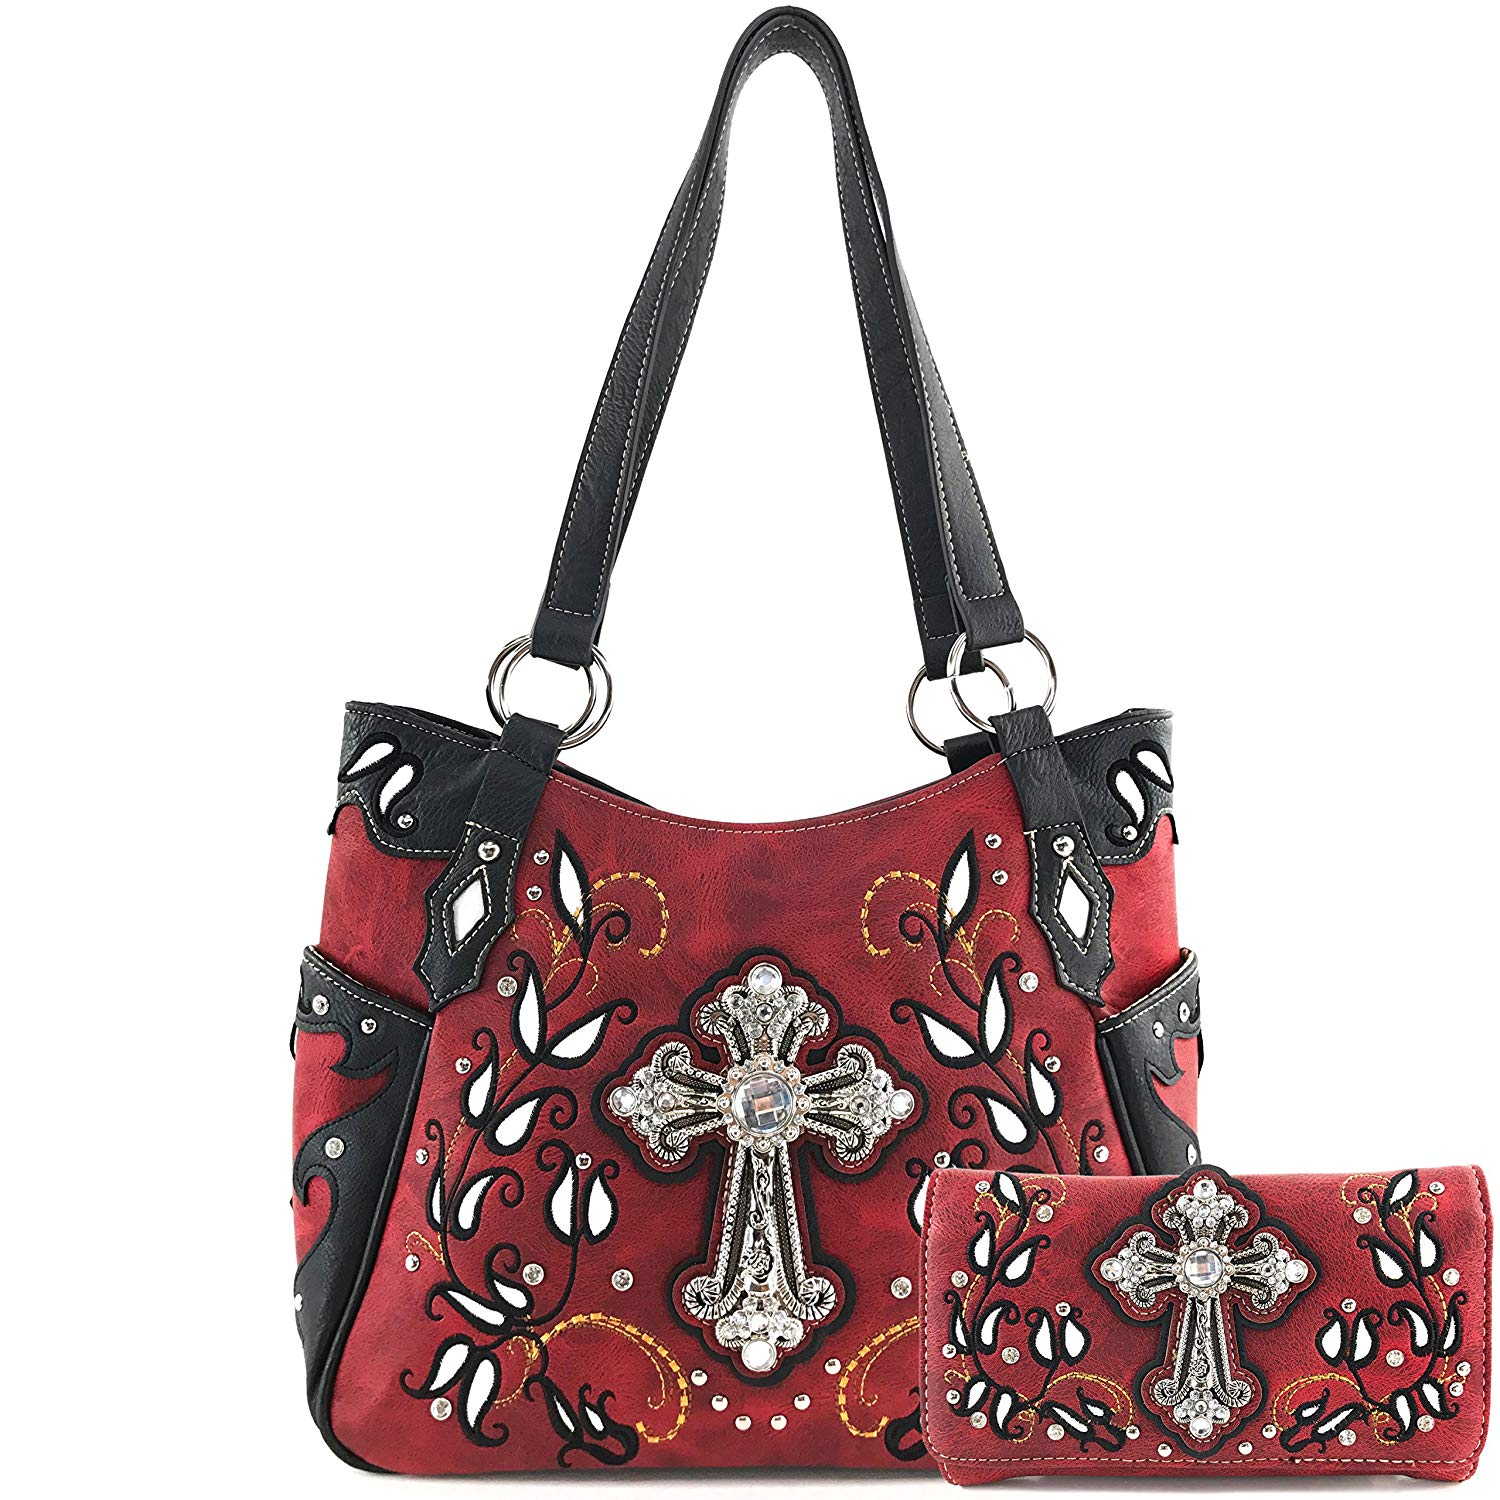 Get Quotations Justin West Western Fl Rhinestone Side Pocket Cross Slim Handle Conceal Carry Handbag Purse Tote And